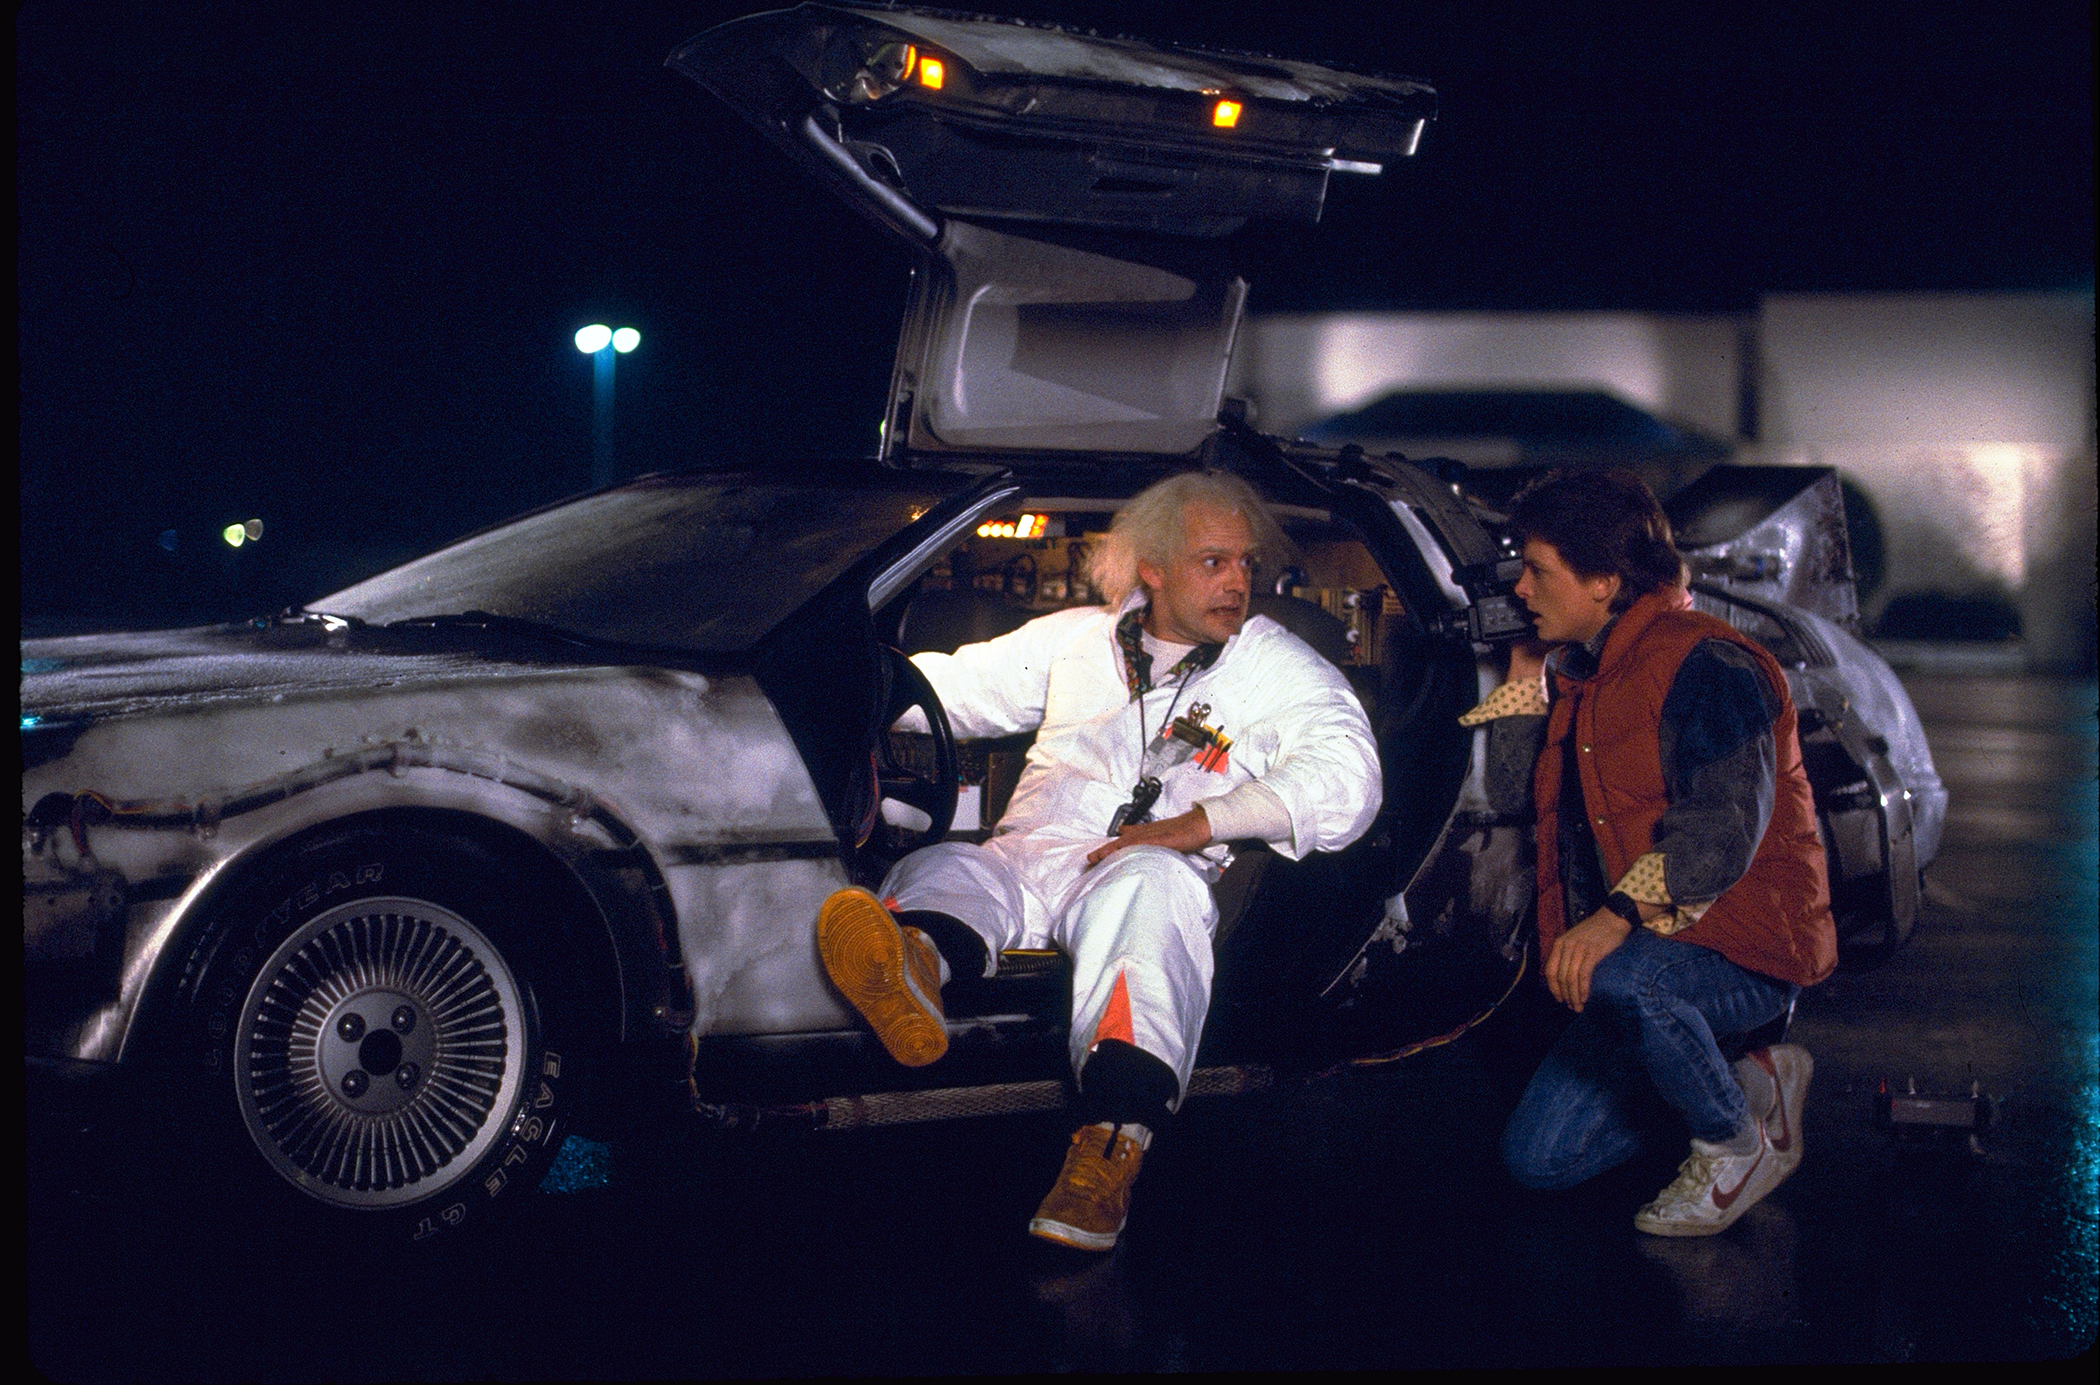 Christopher Lloyd & Michael J. Fox in Back to the Future (1985)